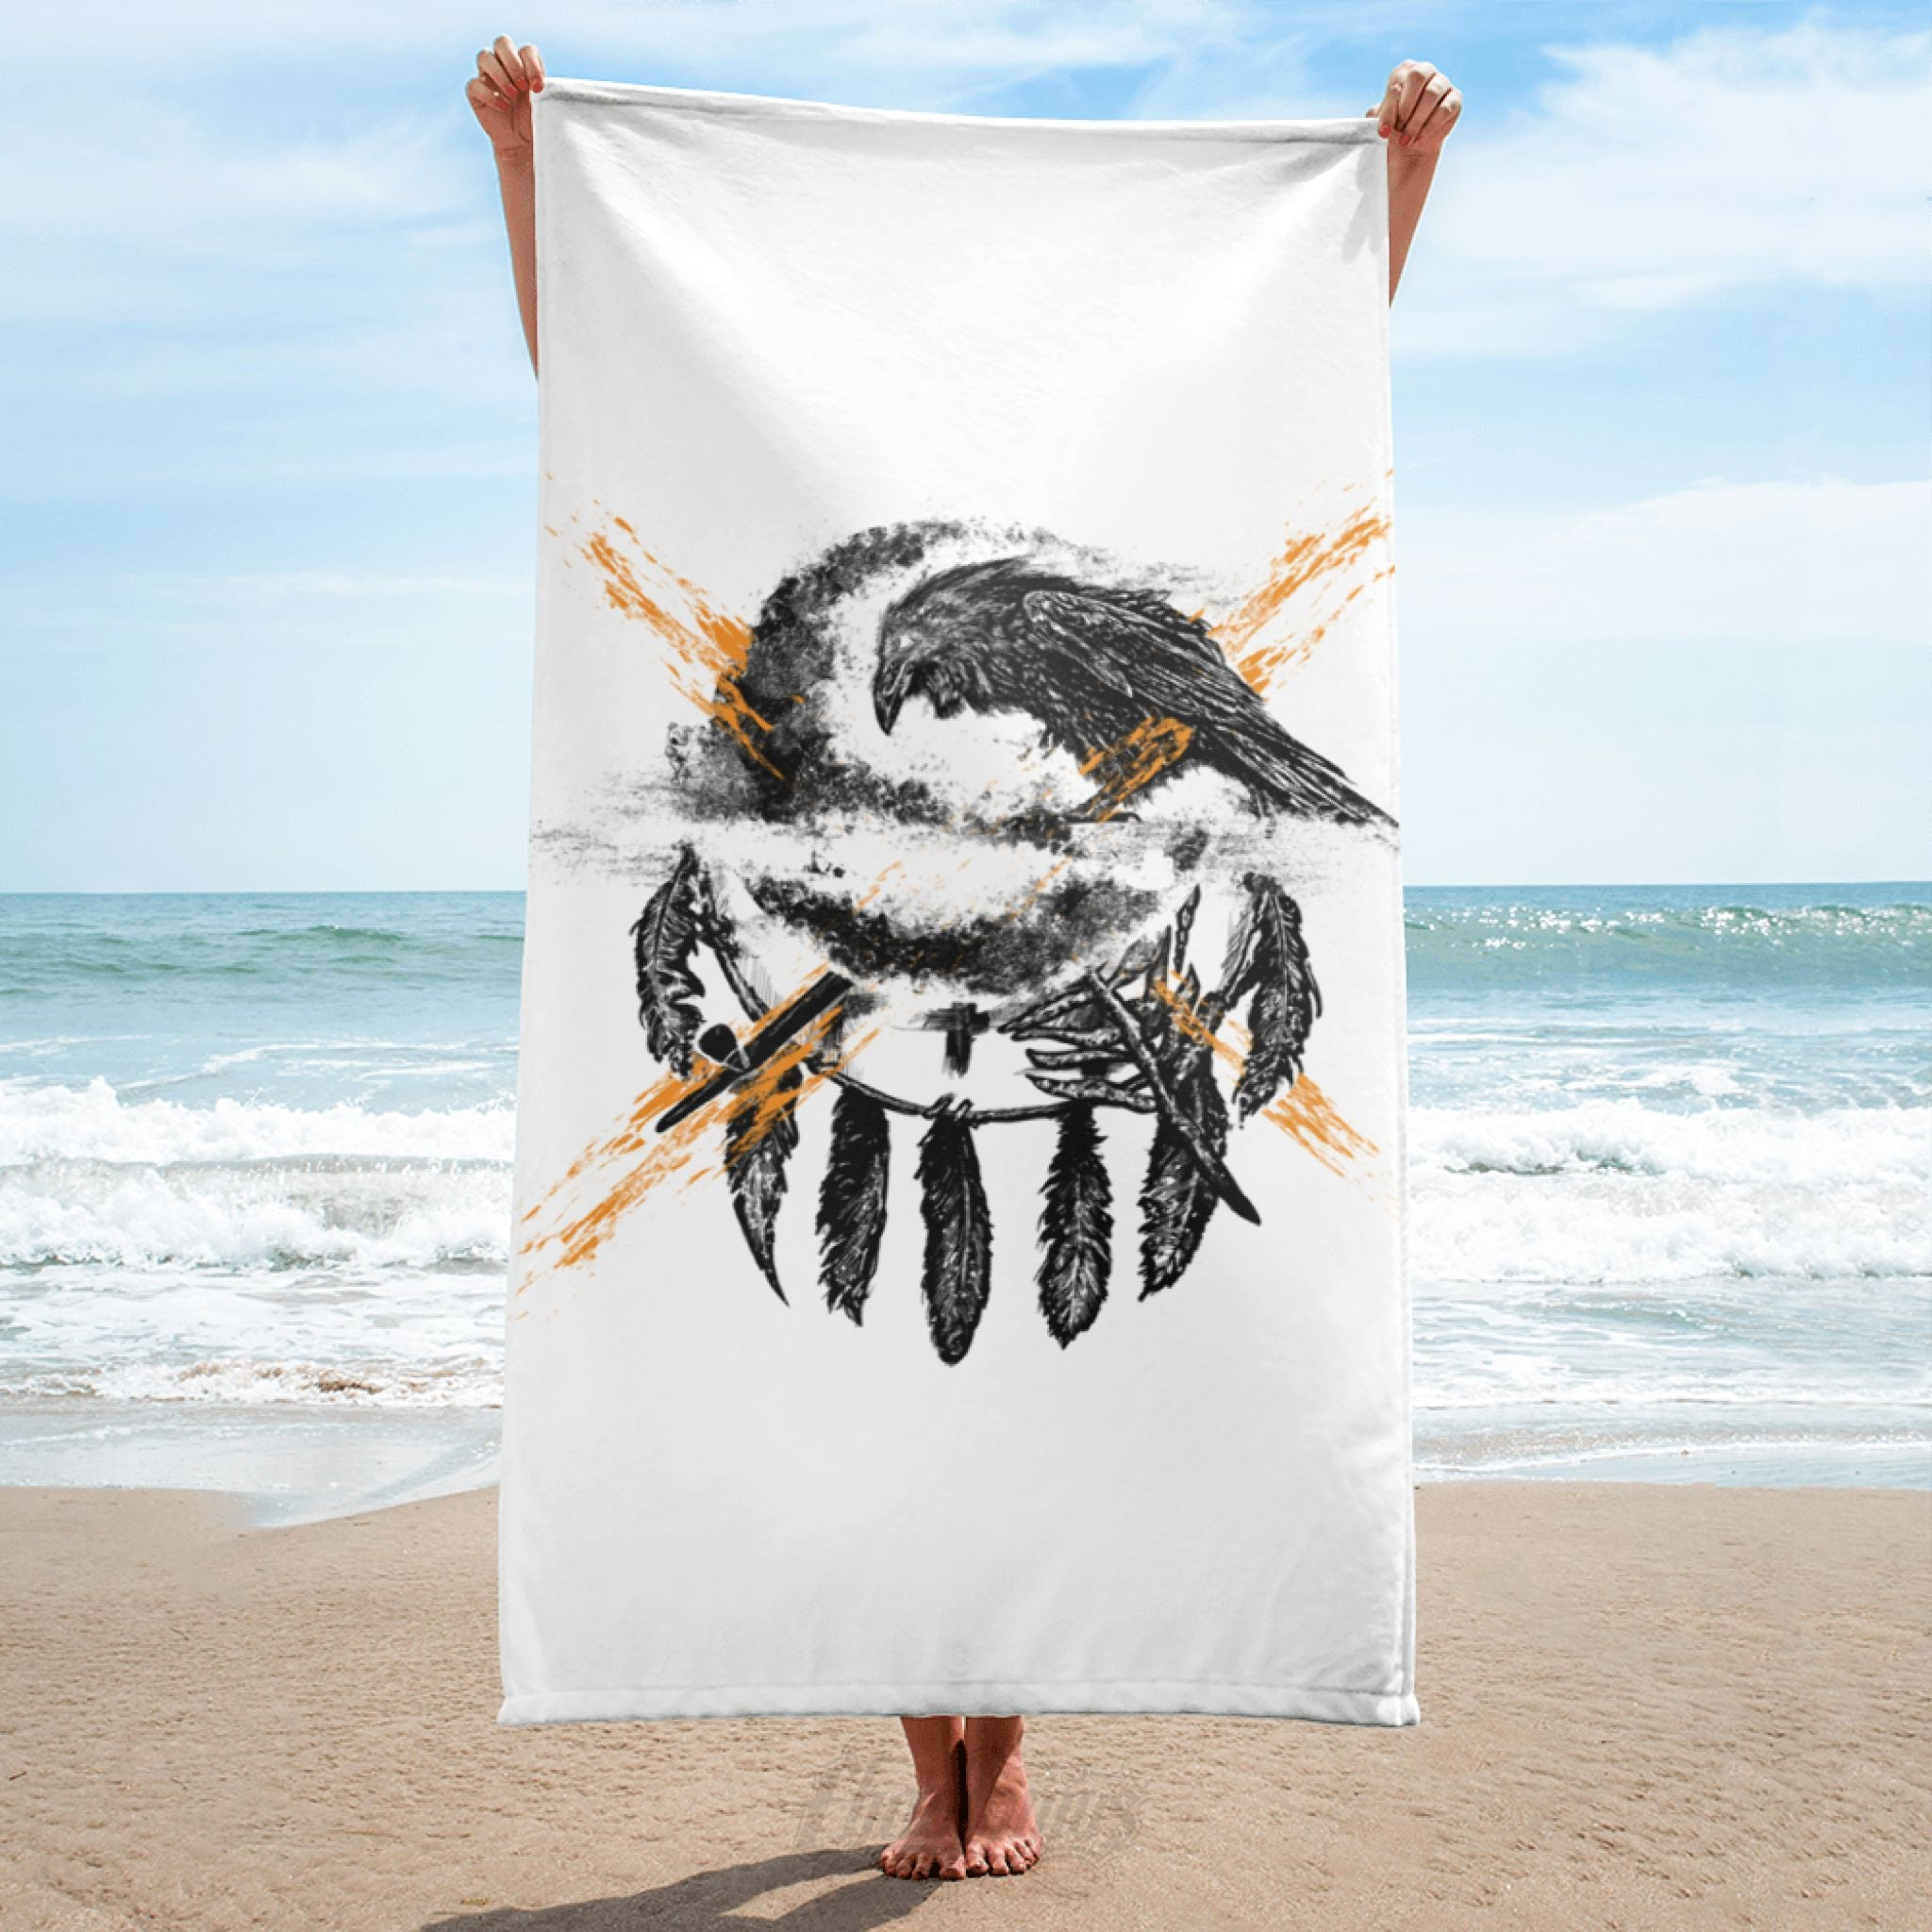 THE CROW - Towel